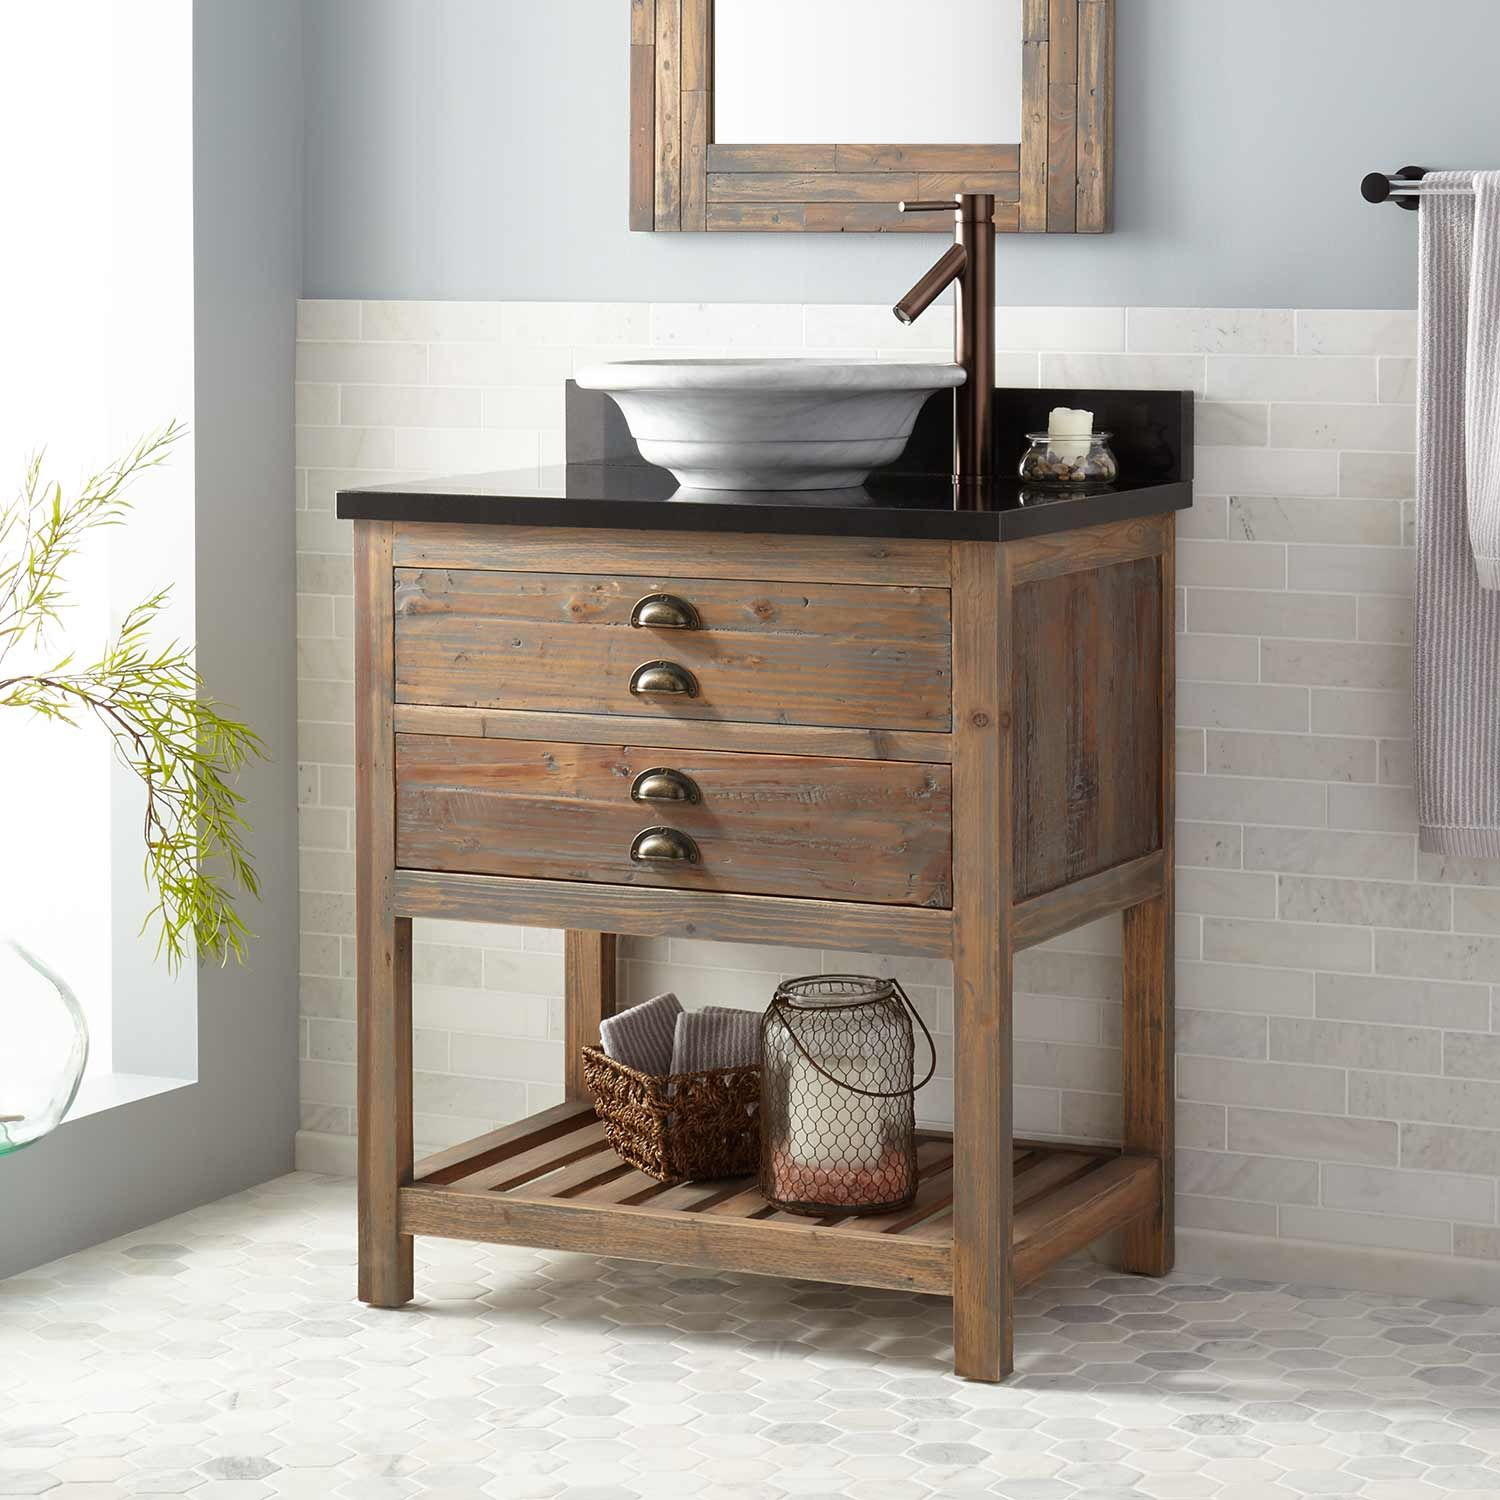 30 Morris Console Vessel Sink Vanity Bathroom Vanities Bathroom Vessel Sink Vanity Bathroom Vanity Wood Console